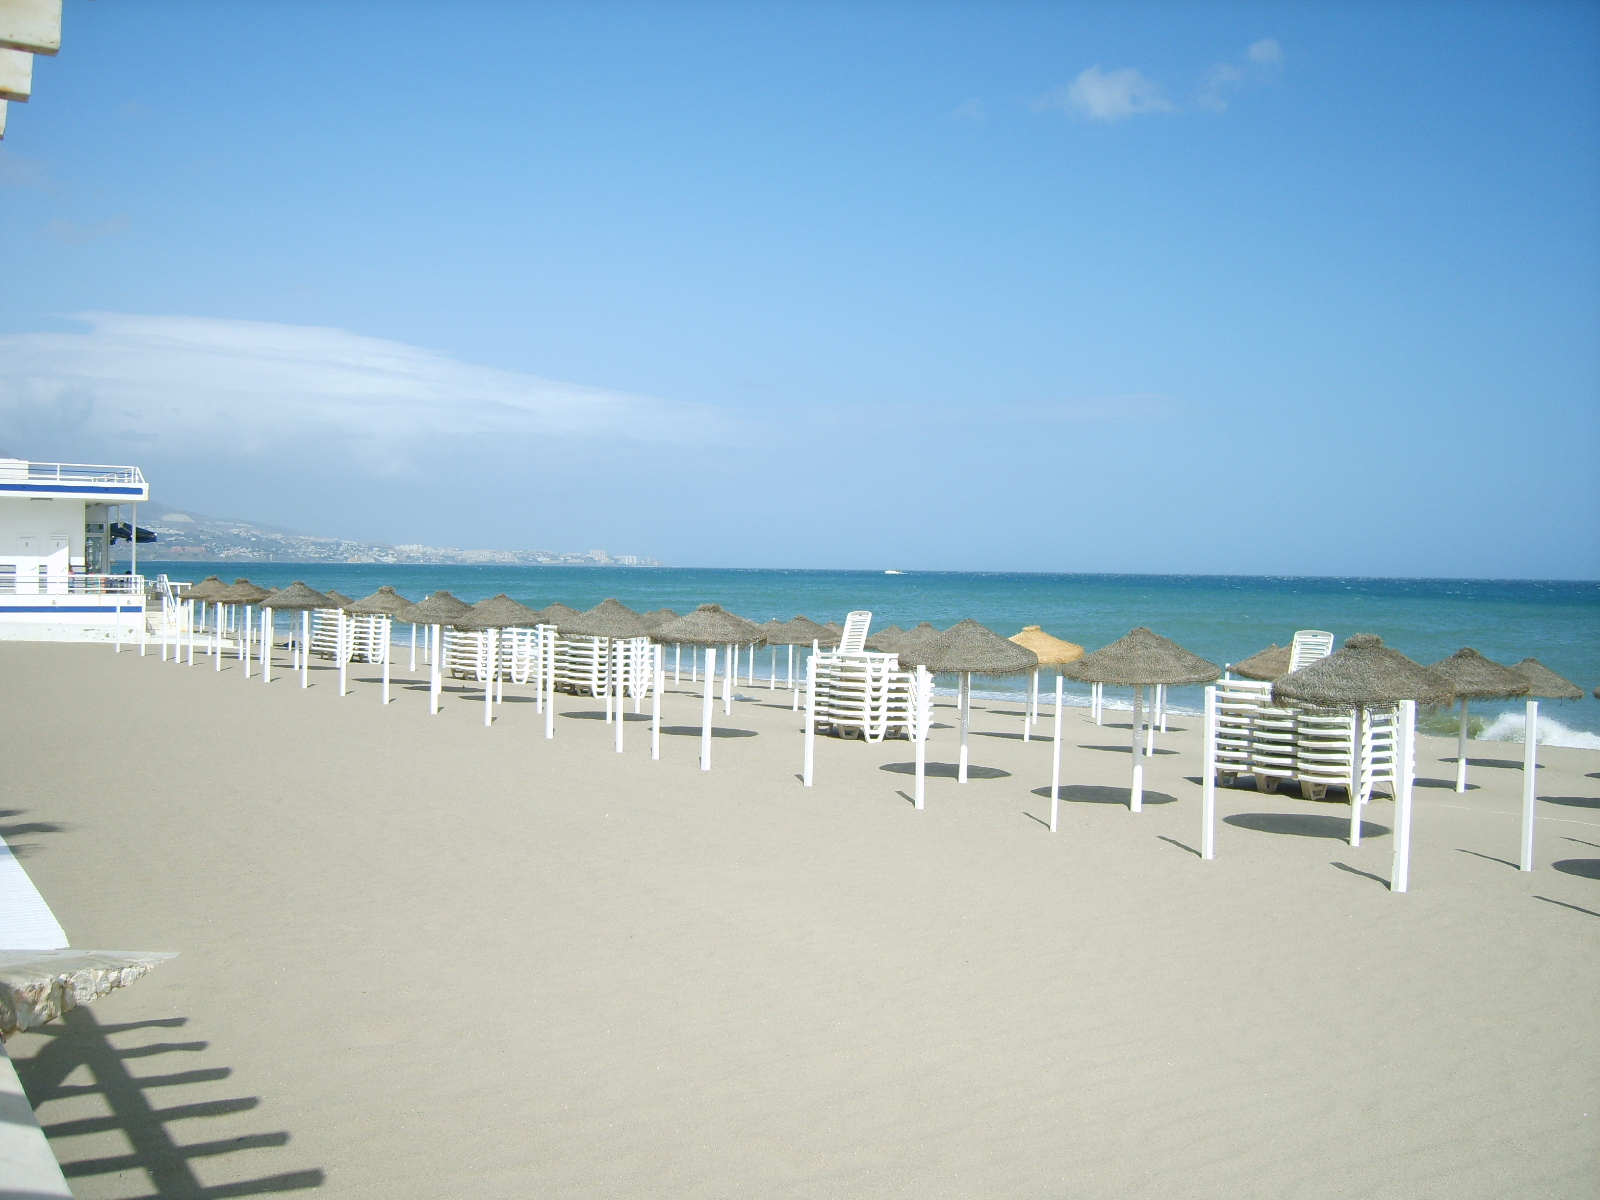 Fuengirola Spain  city pictures gallery : Description Fuengirola beach 3